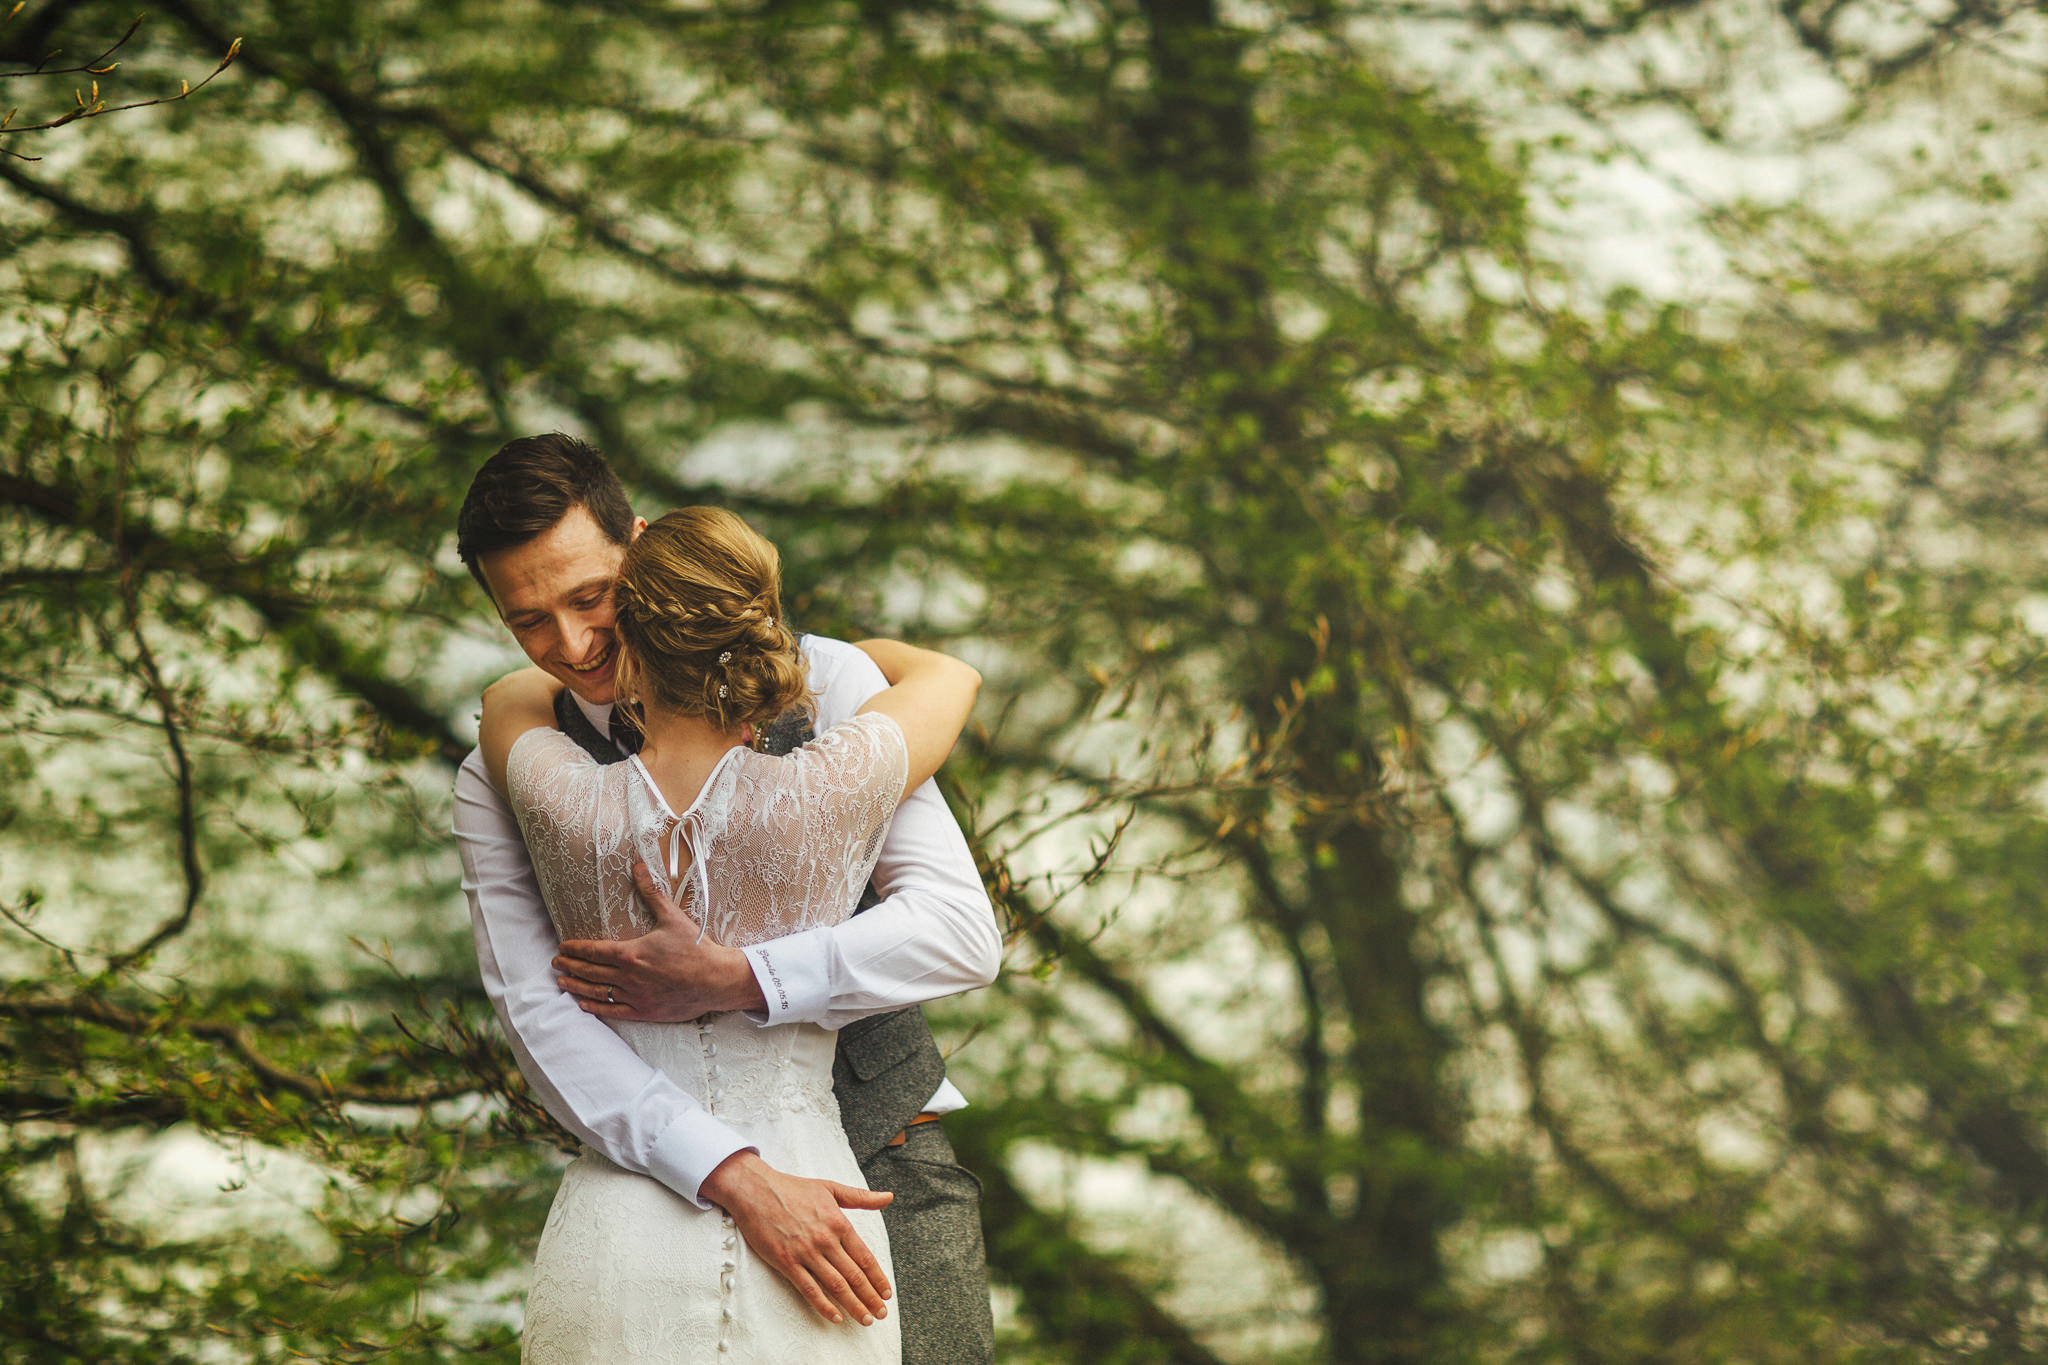 paul-marbrook-best-wedding-photographer-north-wales-093084